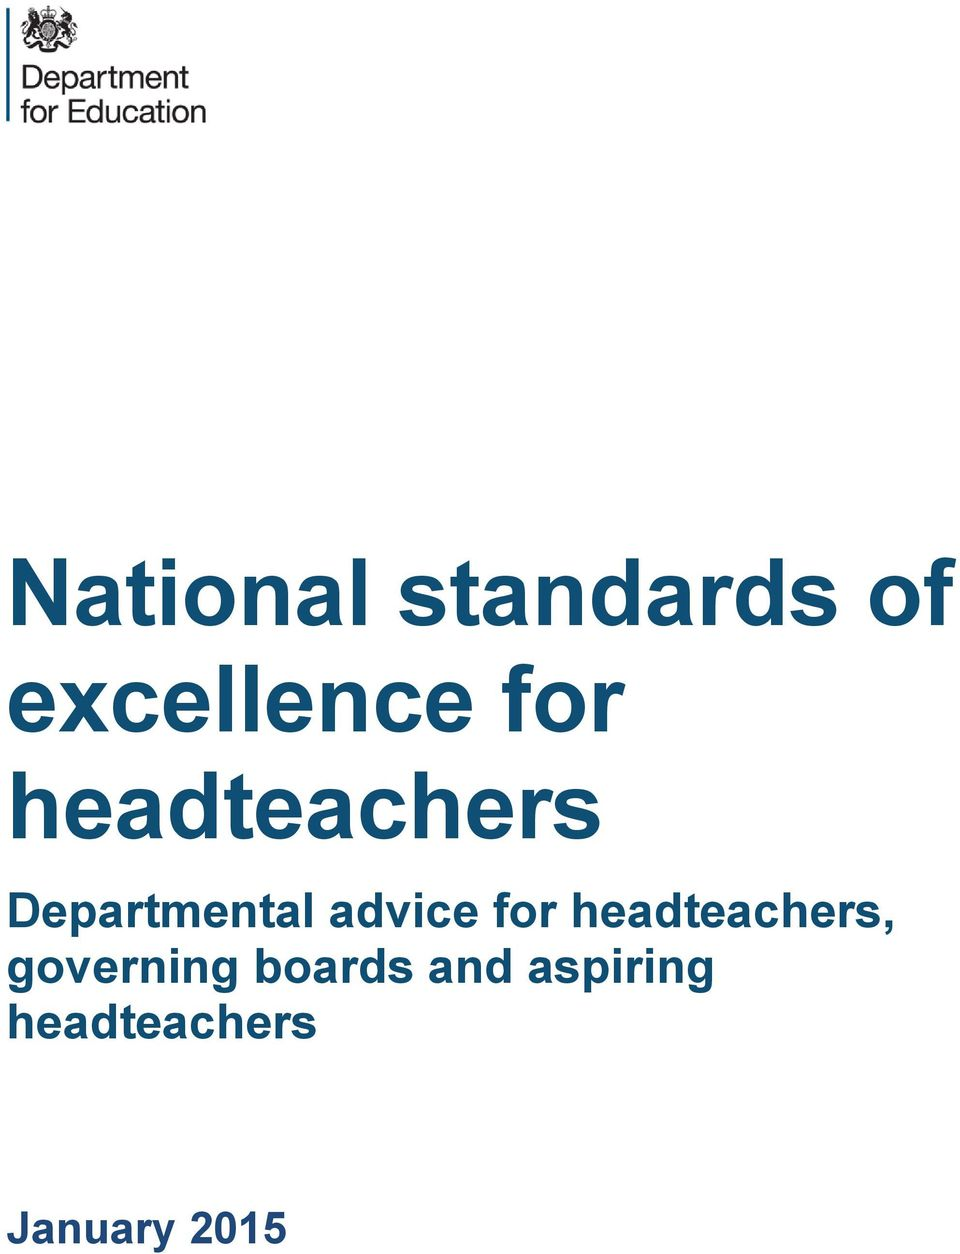 advice for headteachers, governing